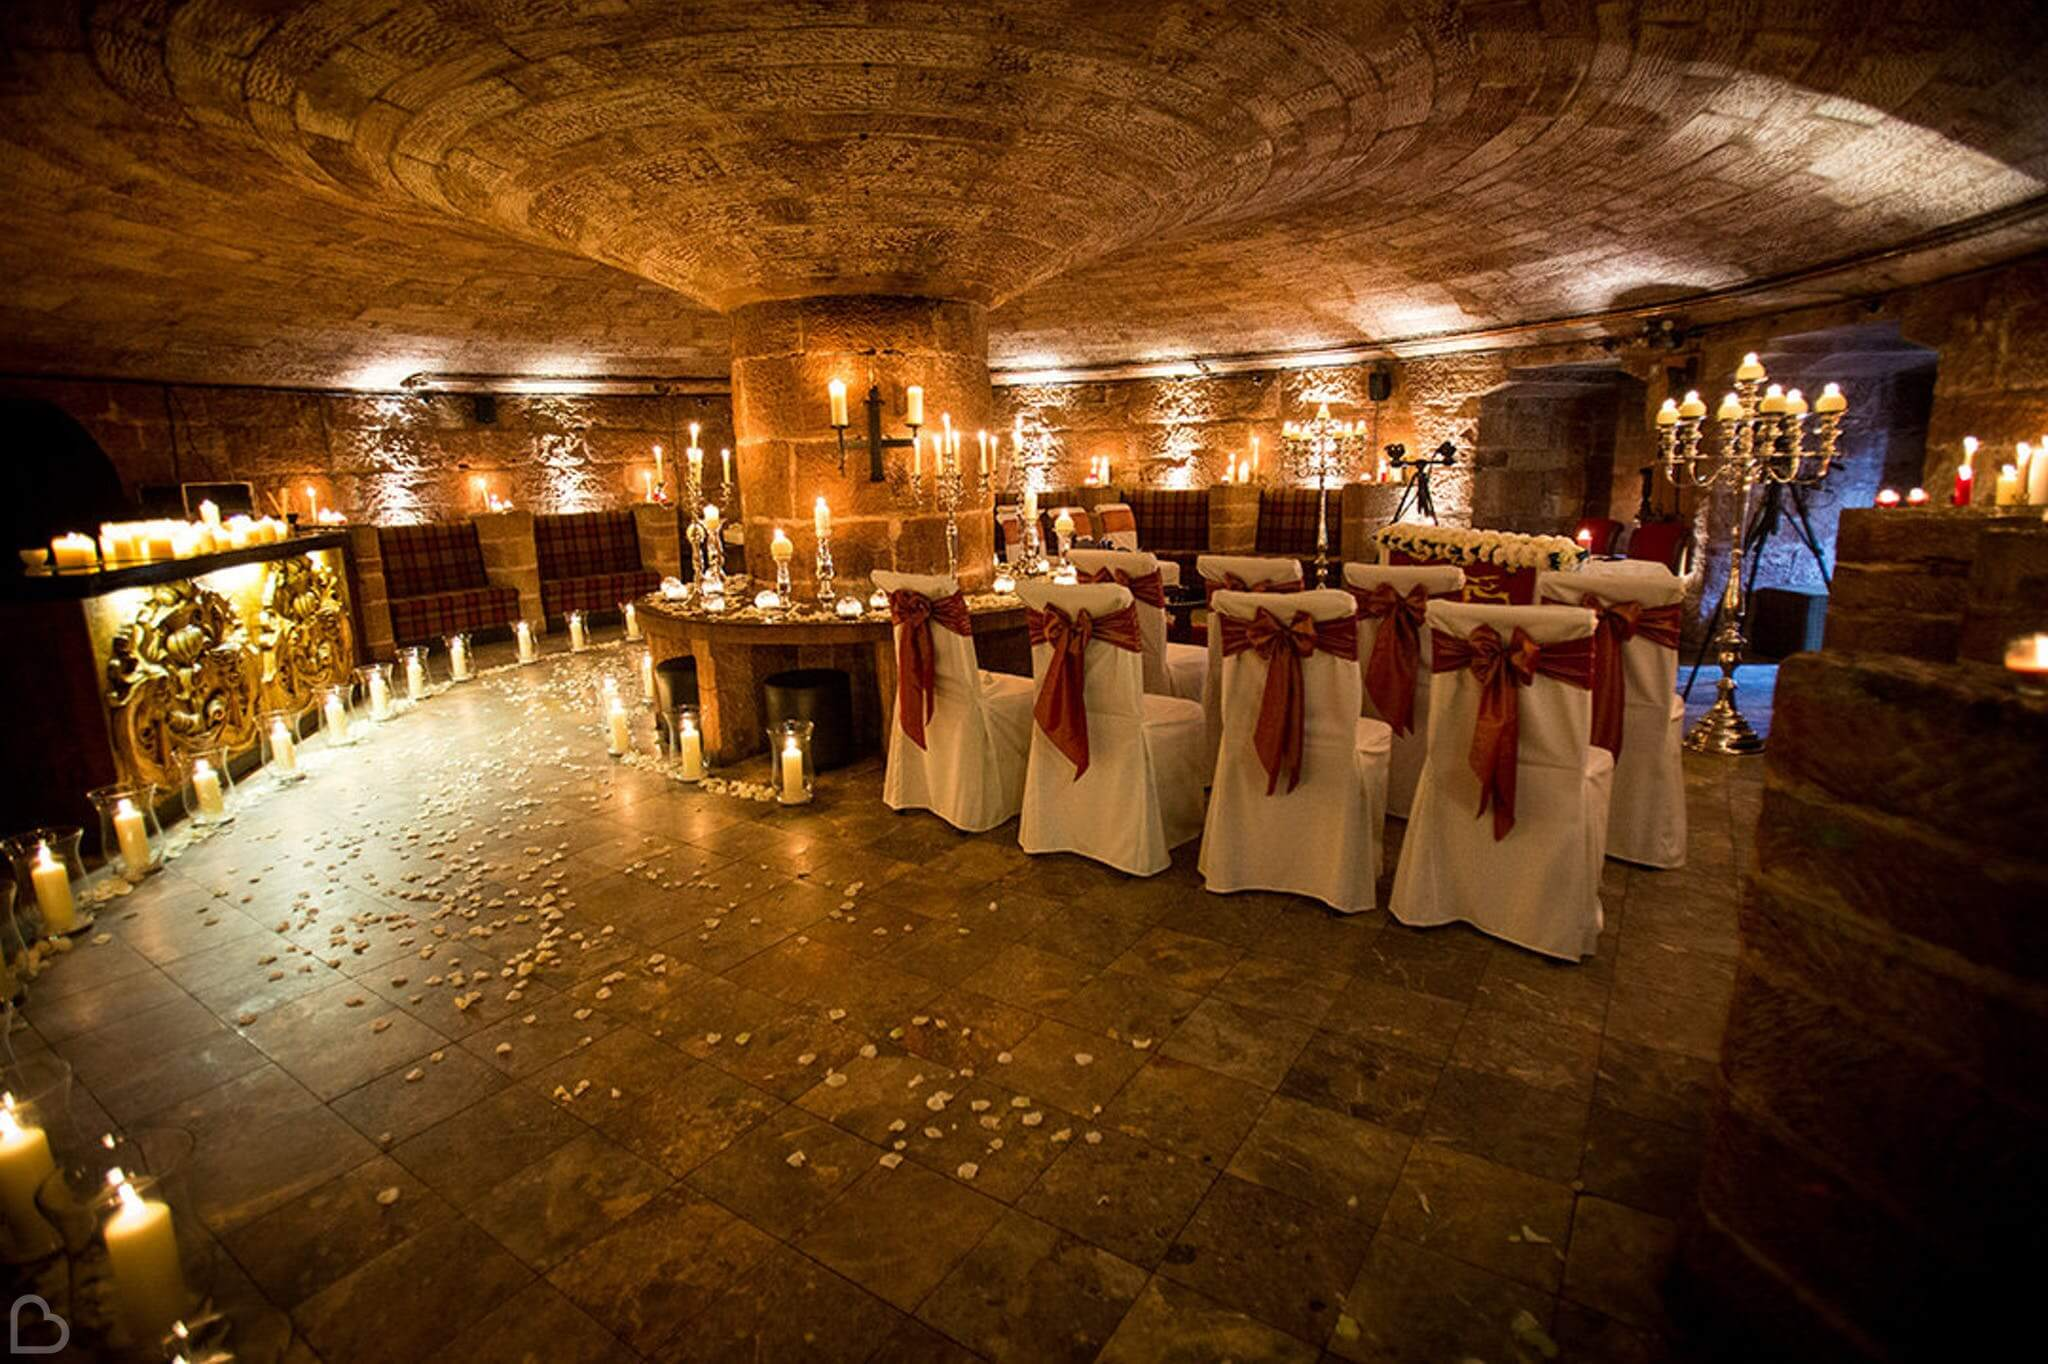 Medieval style dining room in Peckford Castle, an exclusive use wedding venue in Cheshire.